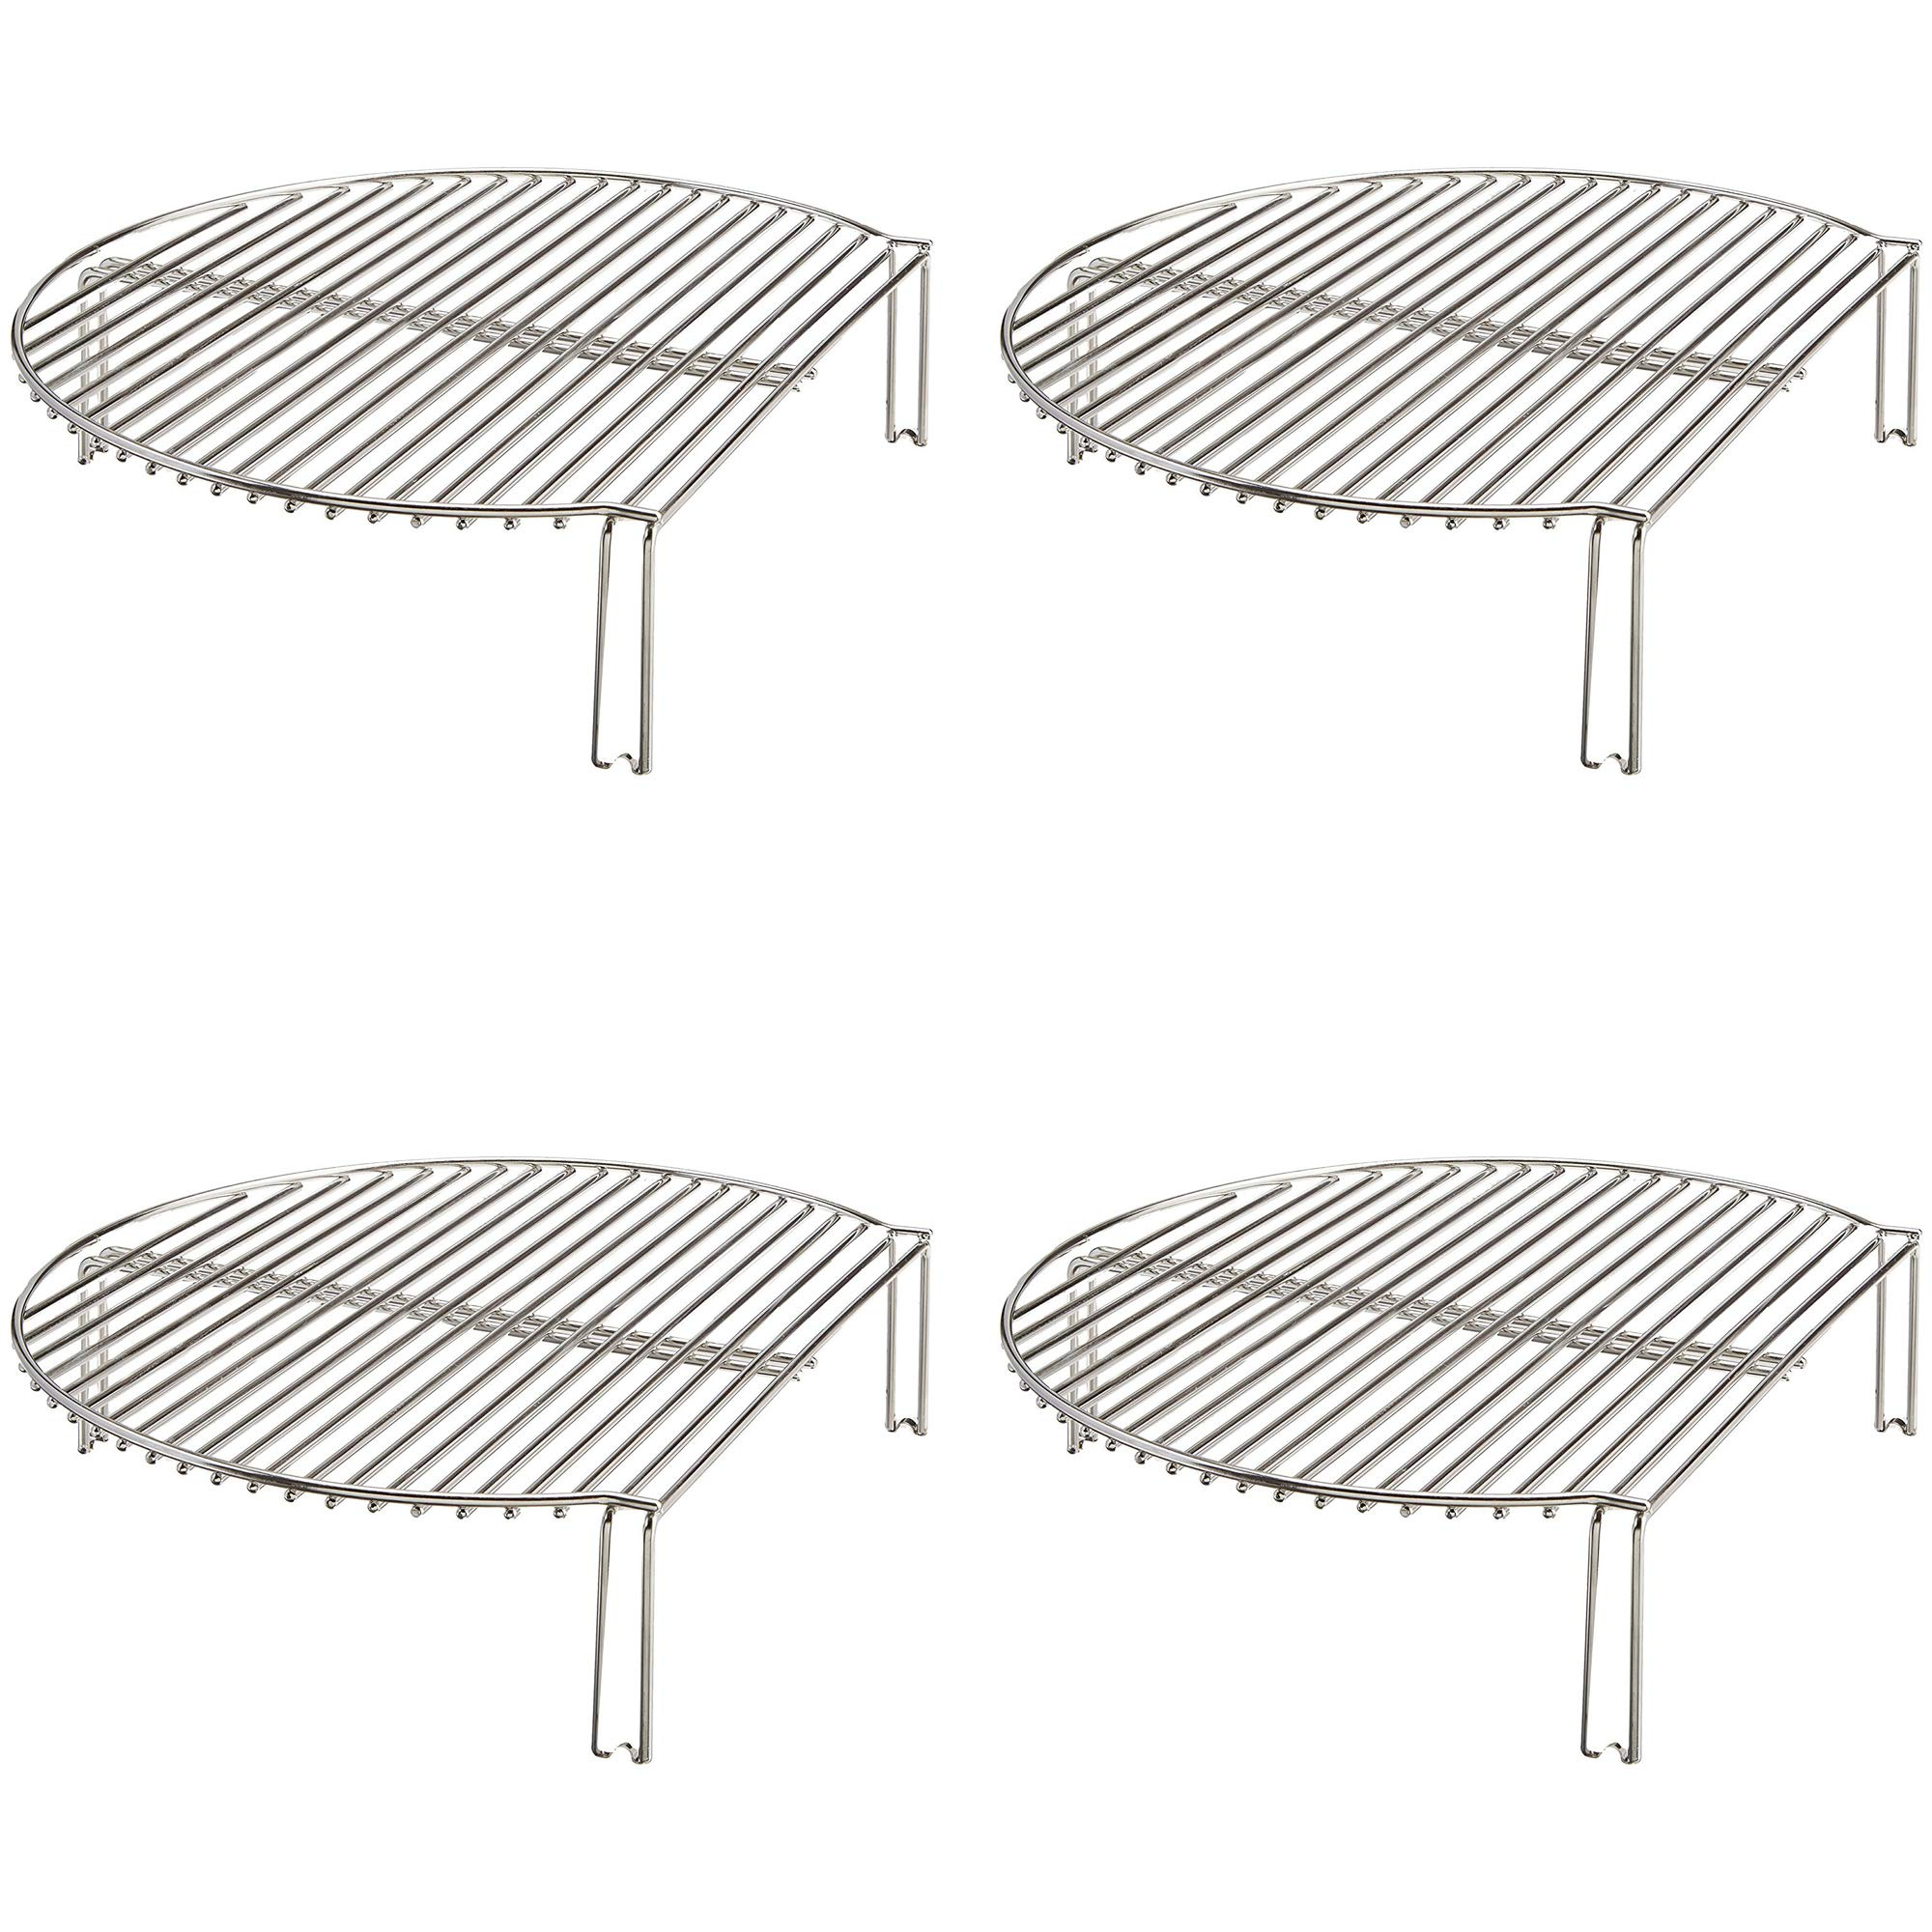 Kamado Joe Classic Joe Stainless Steel Grill/Smoker Expander Cook Rack (4 Pack) by Kamado Joe